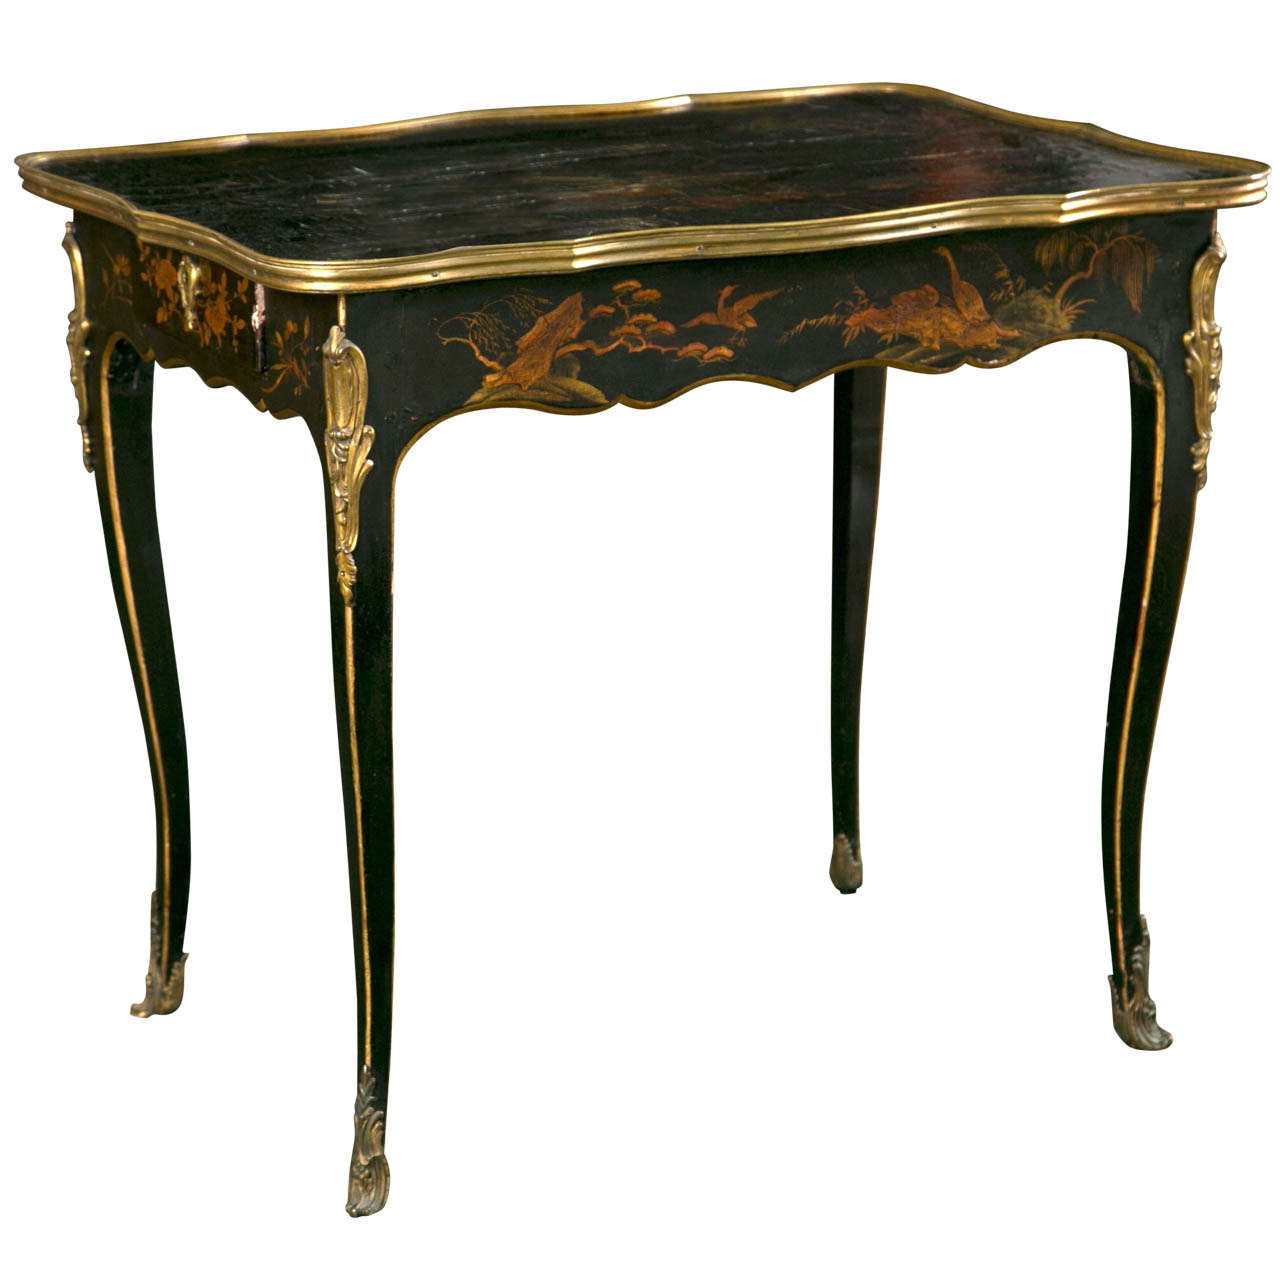 Louis xv petit bureau plat at 1stdibs for Bureau louis xv